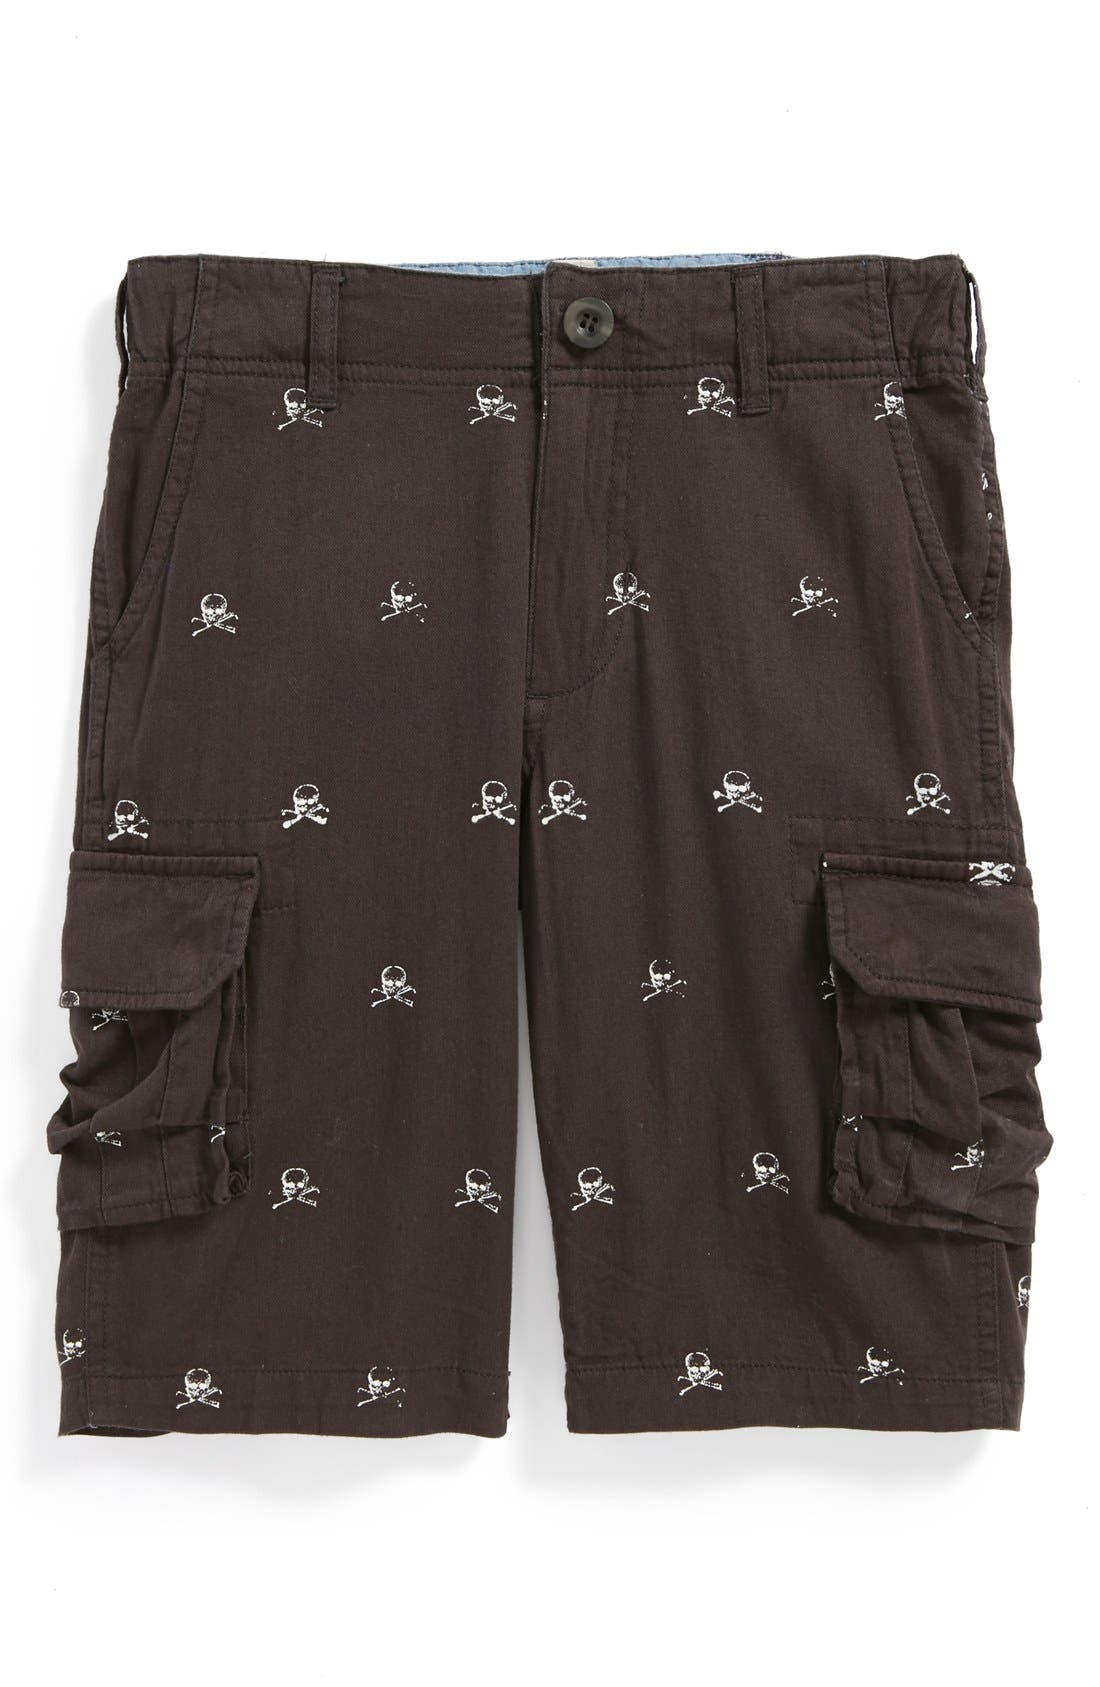 Alternate Image 1 Selected - Peek 'Skull' Cargo Shorts (Toddler Boys, Little Boys & Big Boys)